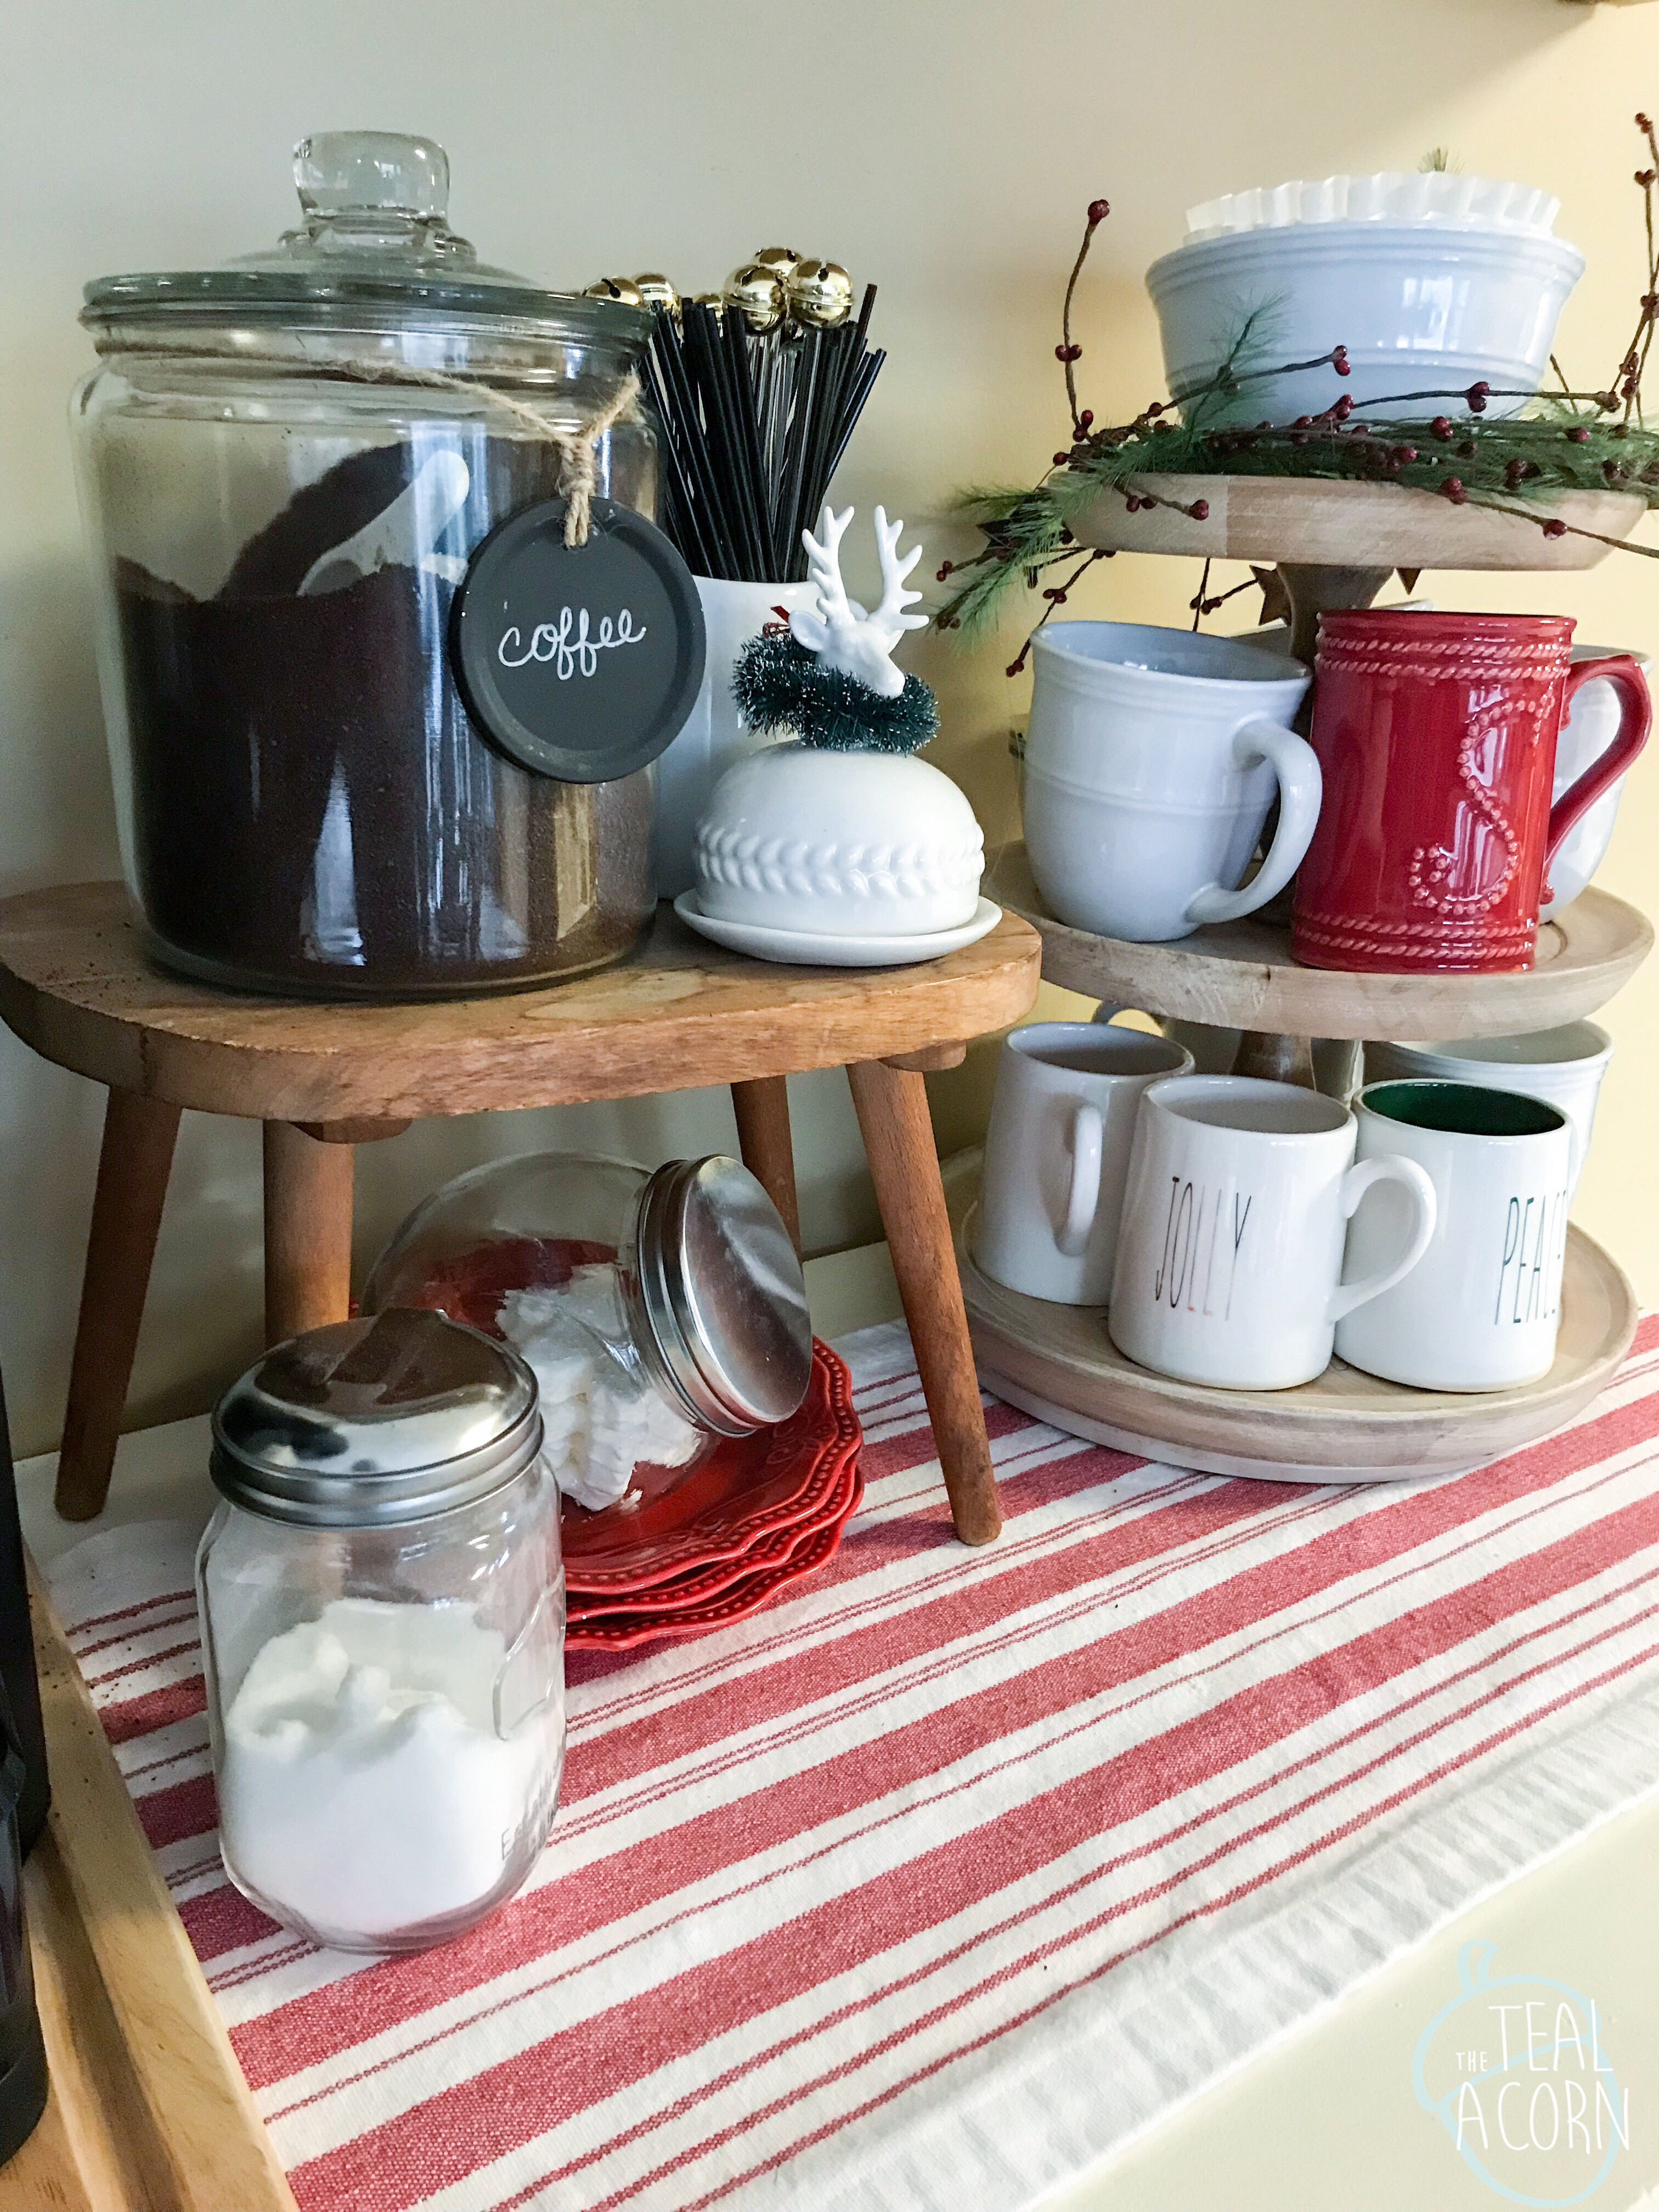 Christmas Coffee station with stack of red plates under a wooden stool used as a riser. Mary & Martha wooden tiered tray holds Christmas coffee mugs.